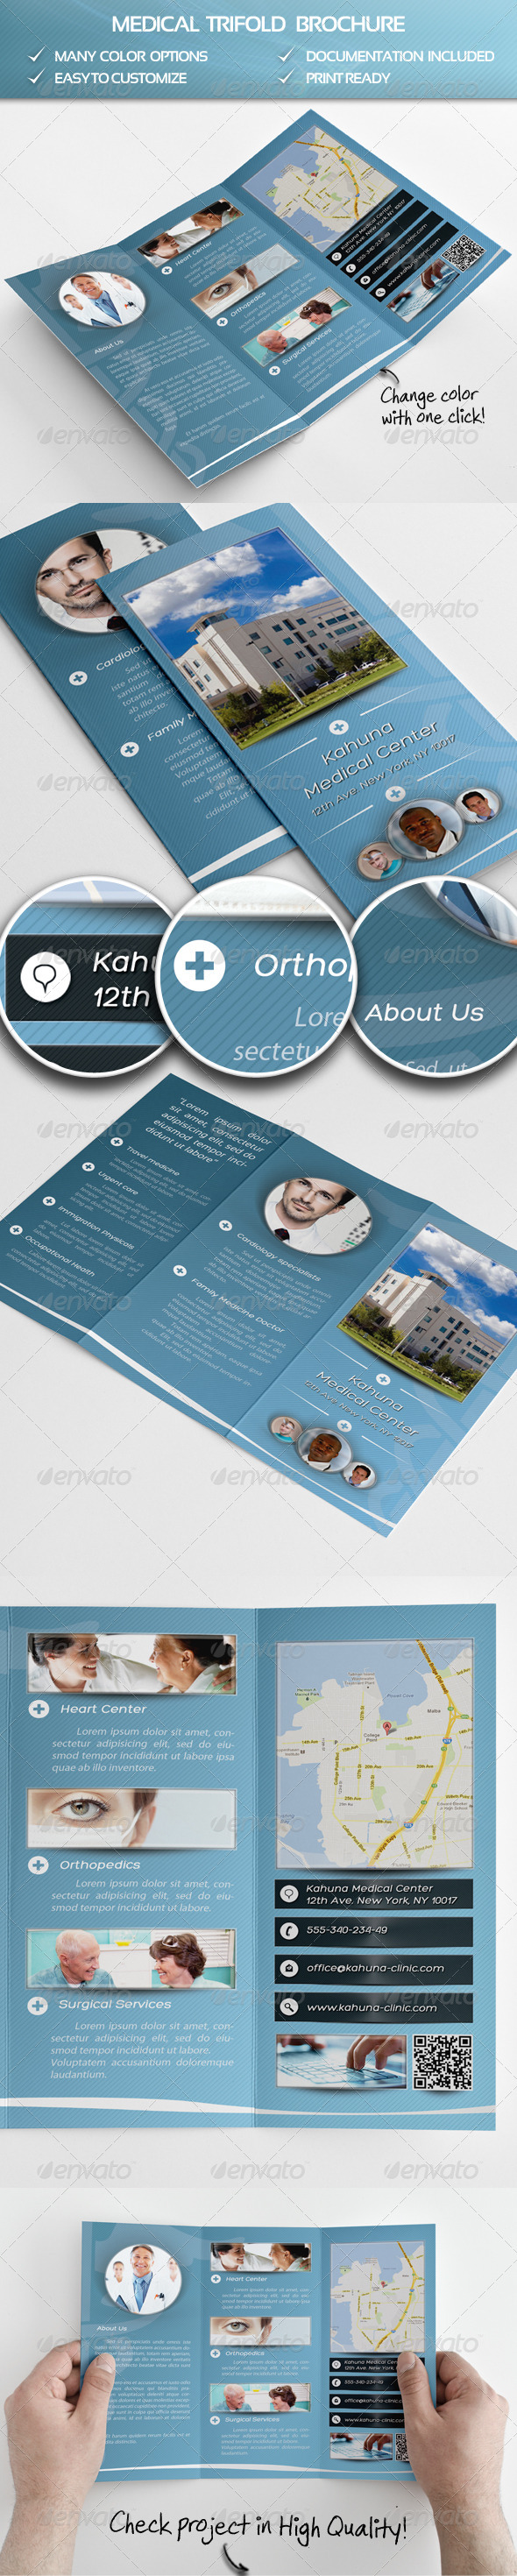 GraphicRiver Medical Trifold Brochure 4228077